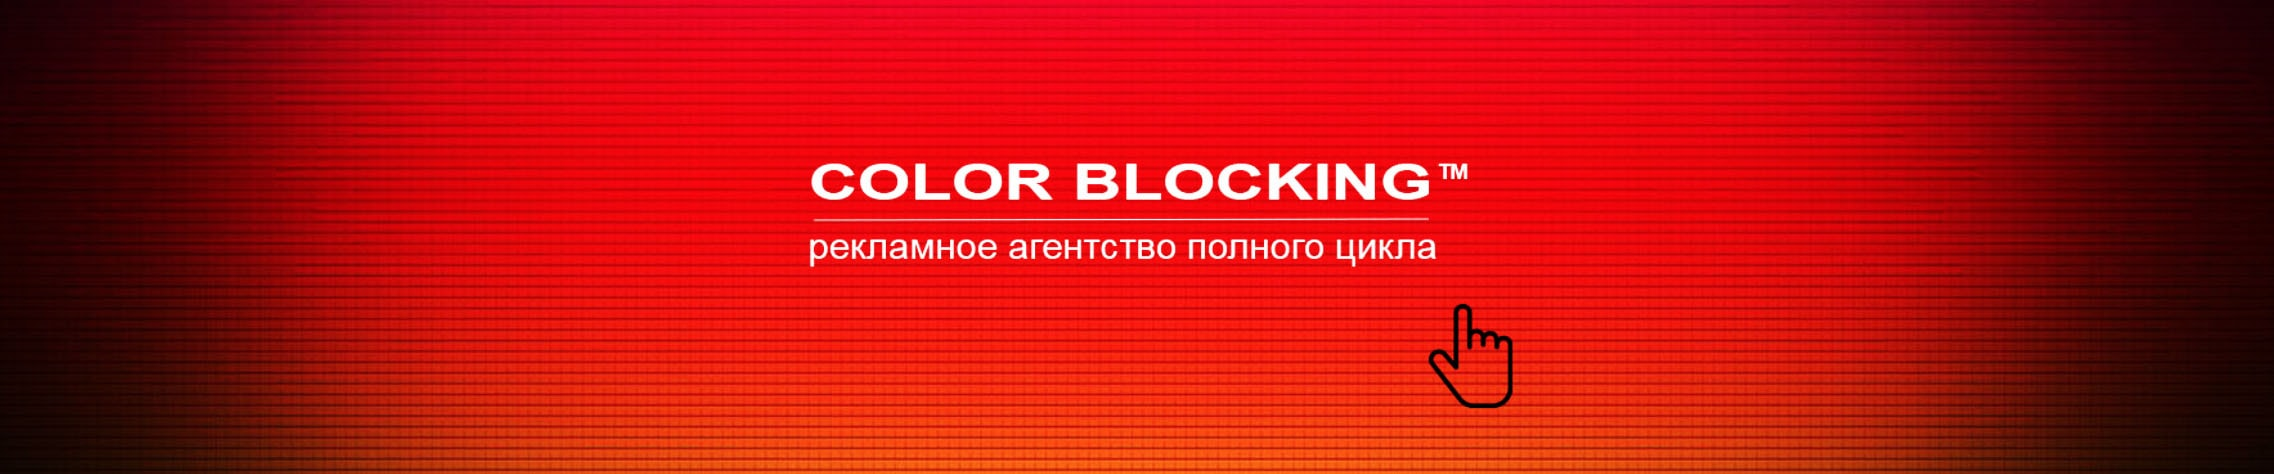 COLOR BLOCKING kids выпуск